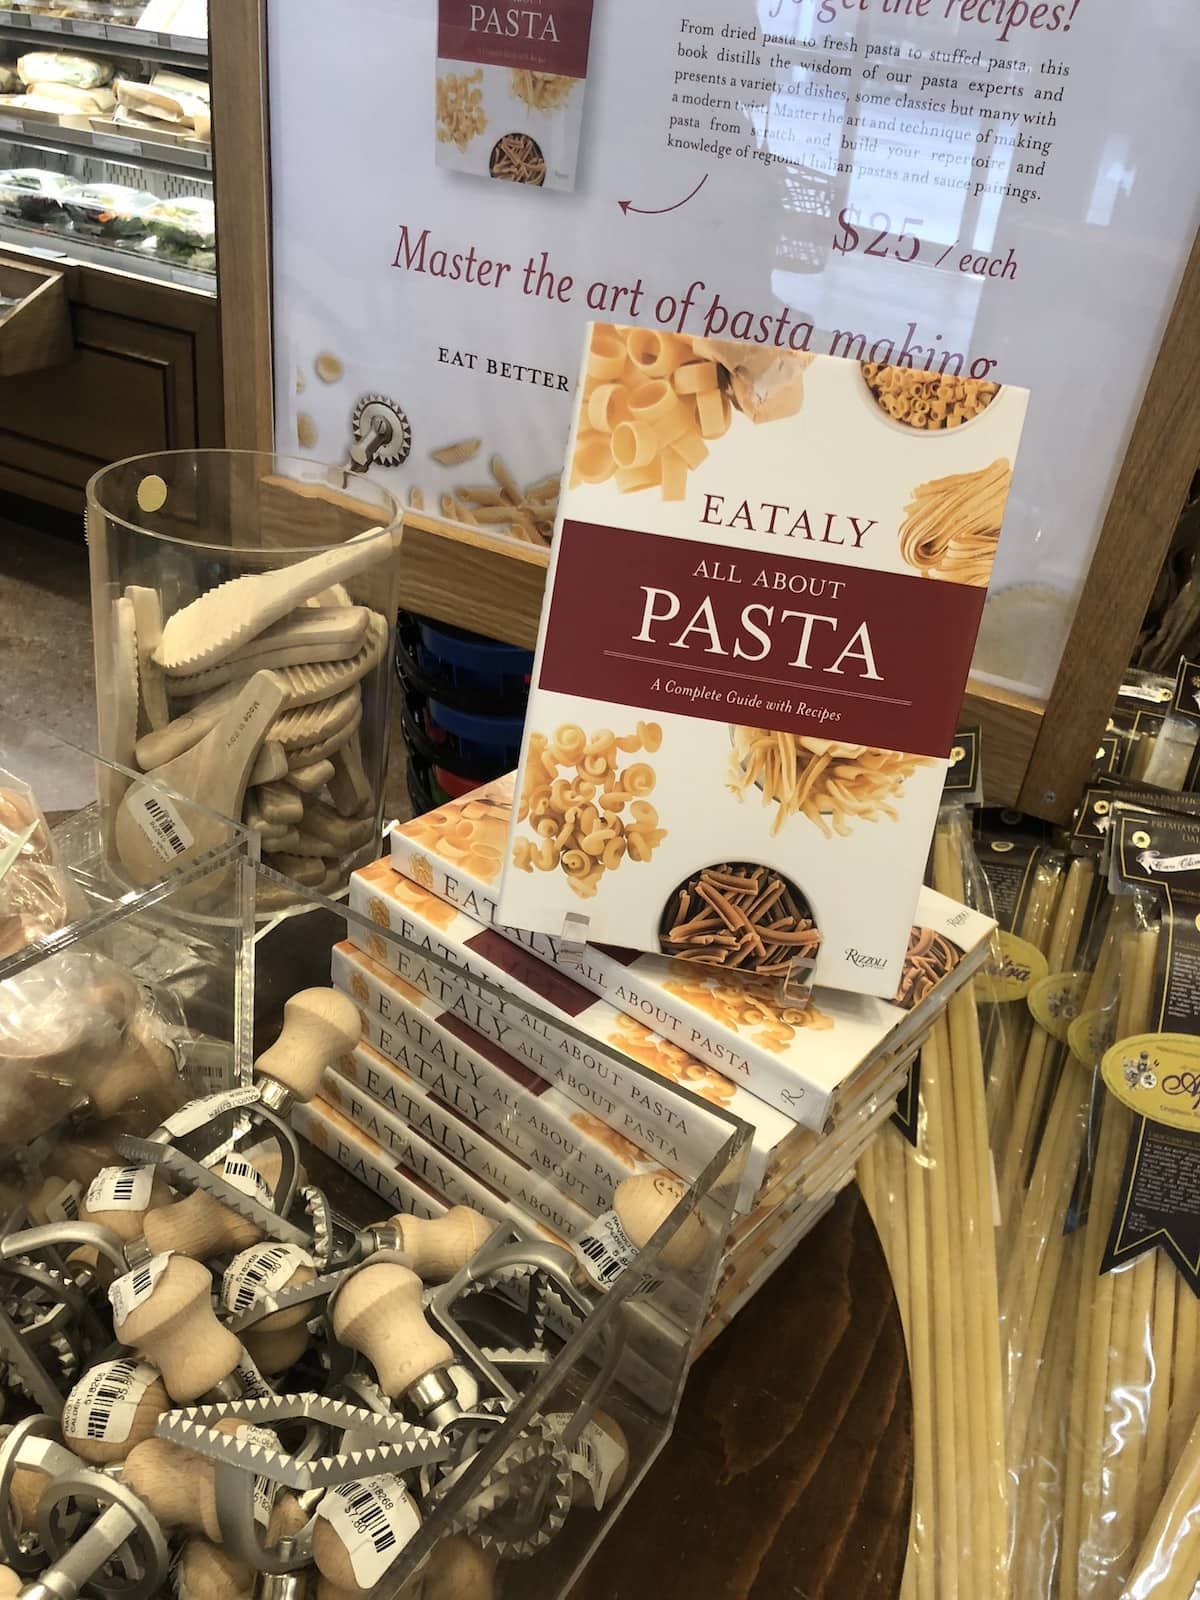 Enjoy Illinois: Exploring Chicago and the Magnificent Mile - Eataly